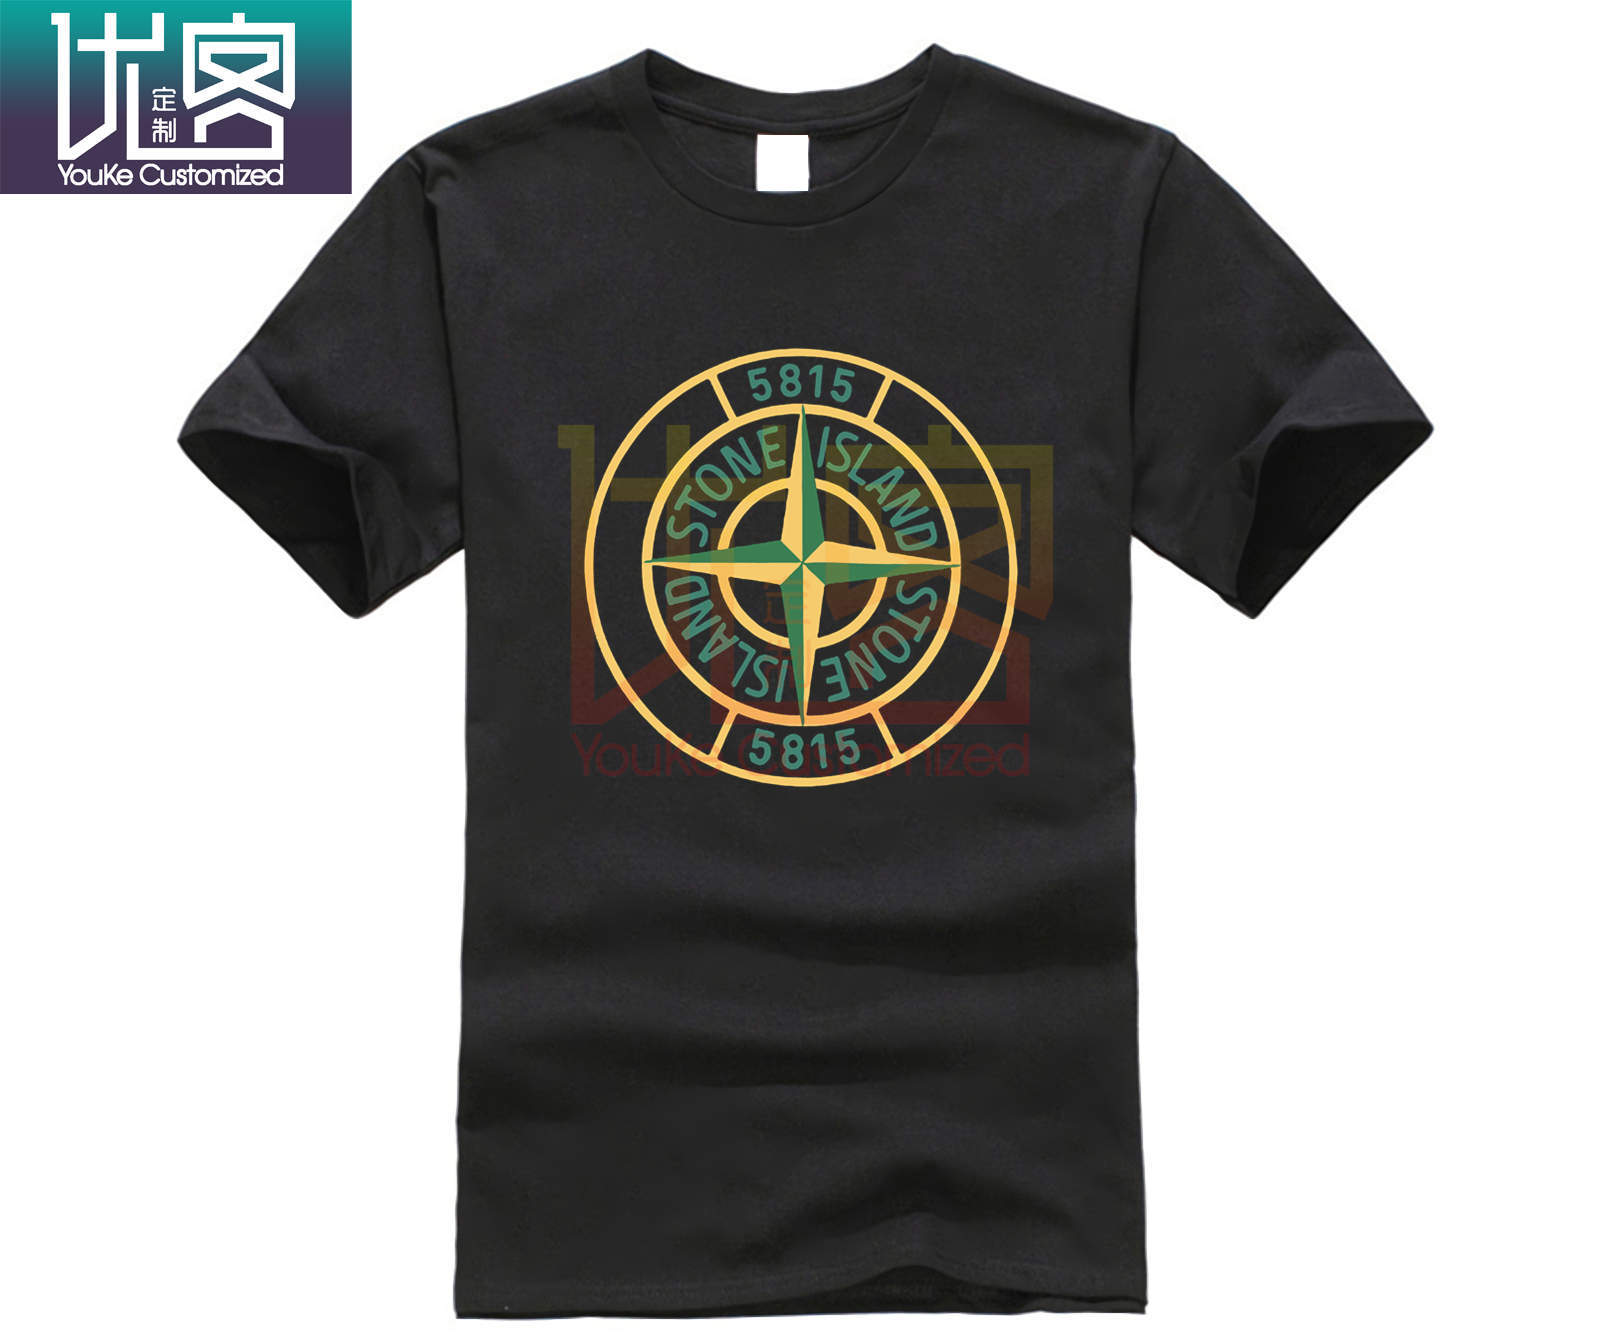 Summer NEW Stone-Island Limitied Edition Men's Black T-Shirt